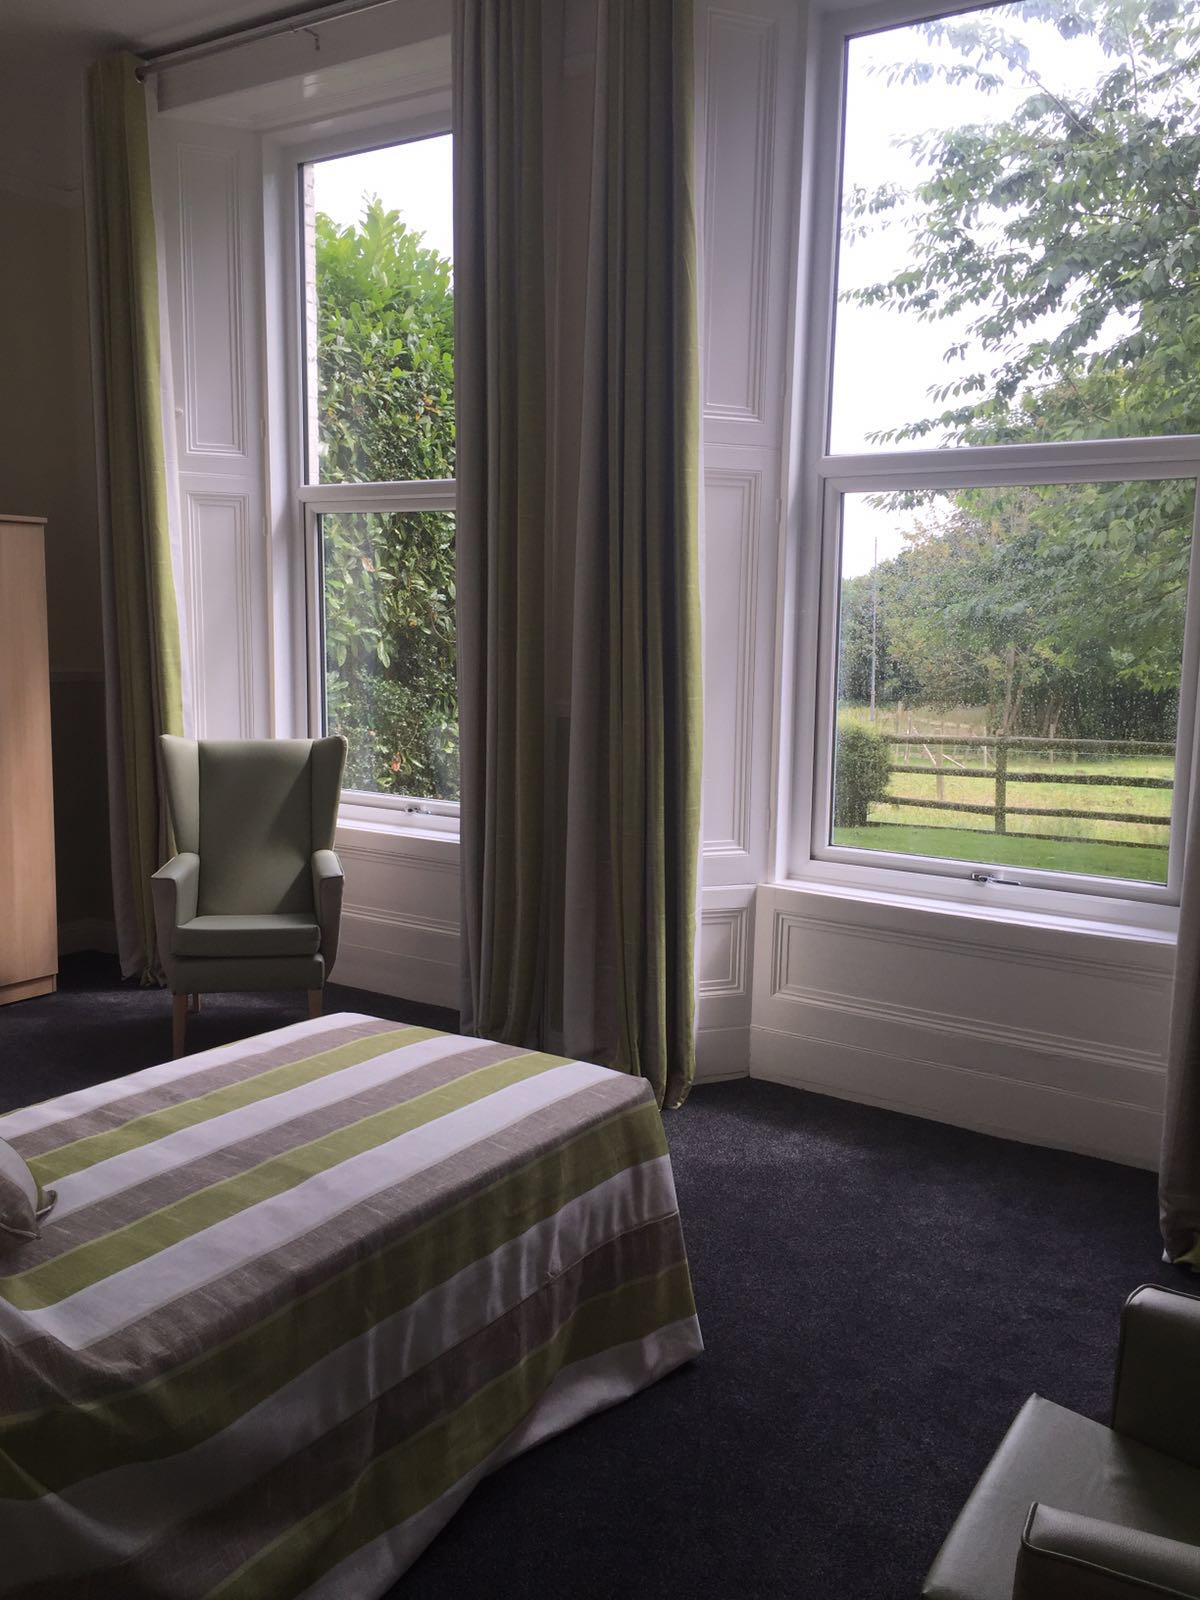 Shedfield Lodge Care Home Dementia Specialist Luxury Accomodation 3